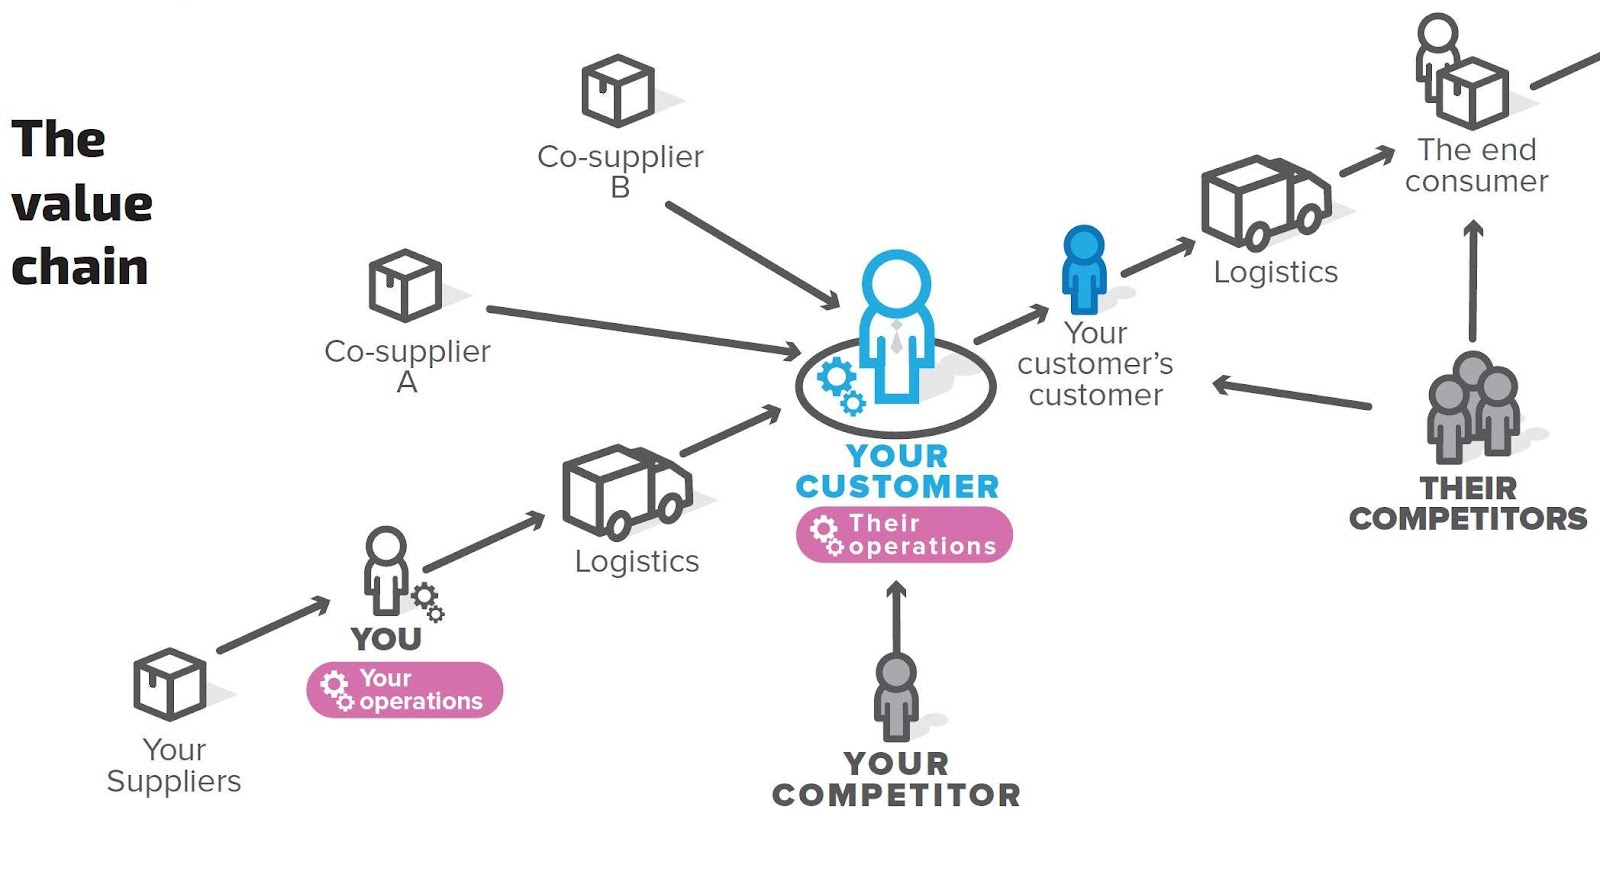 The Value Chain in B2B Relationships